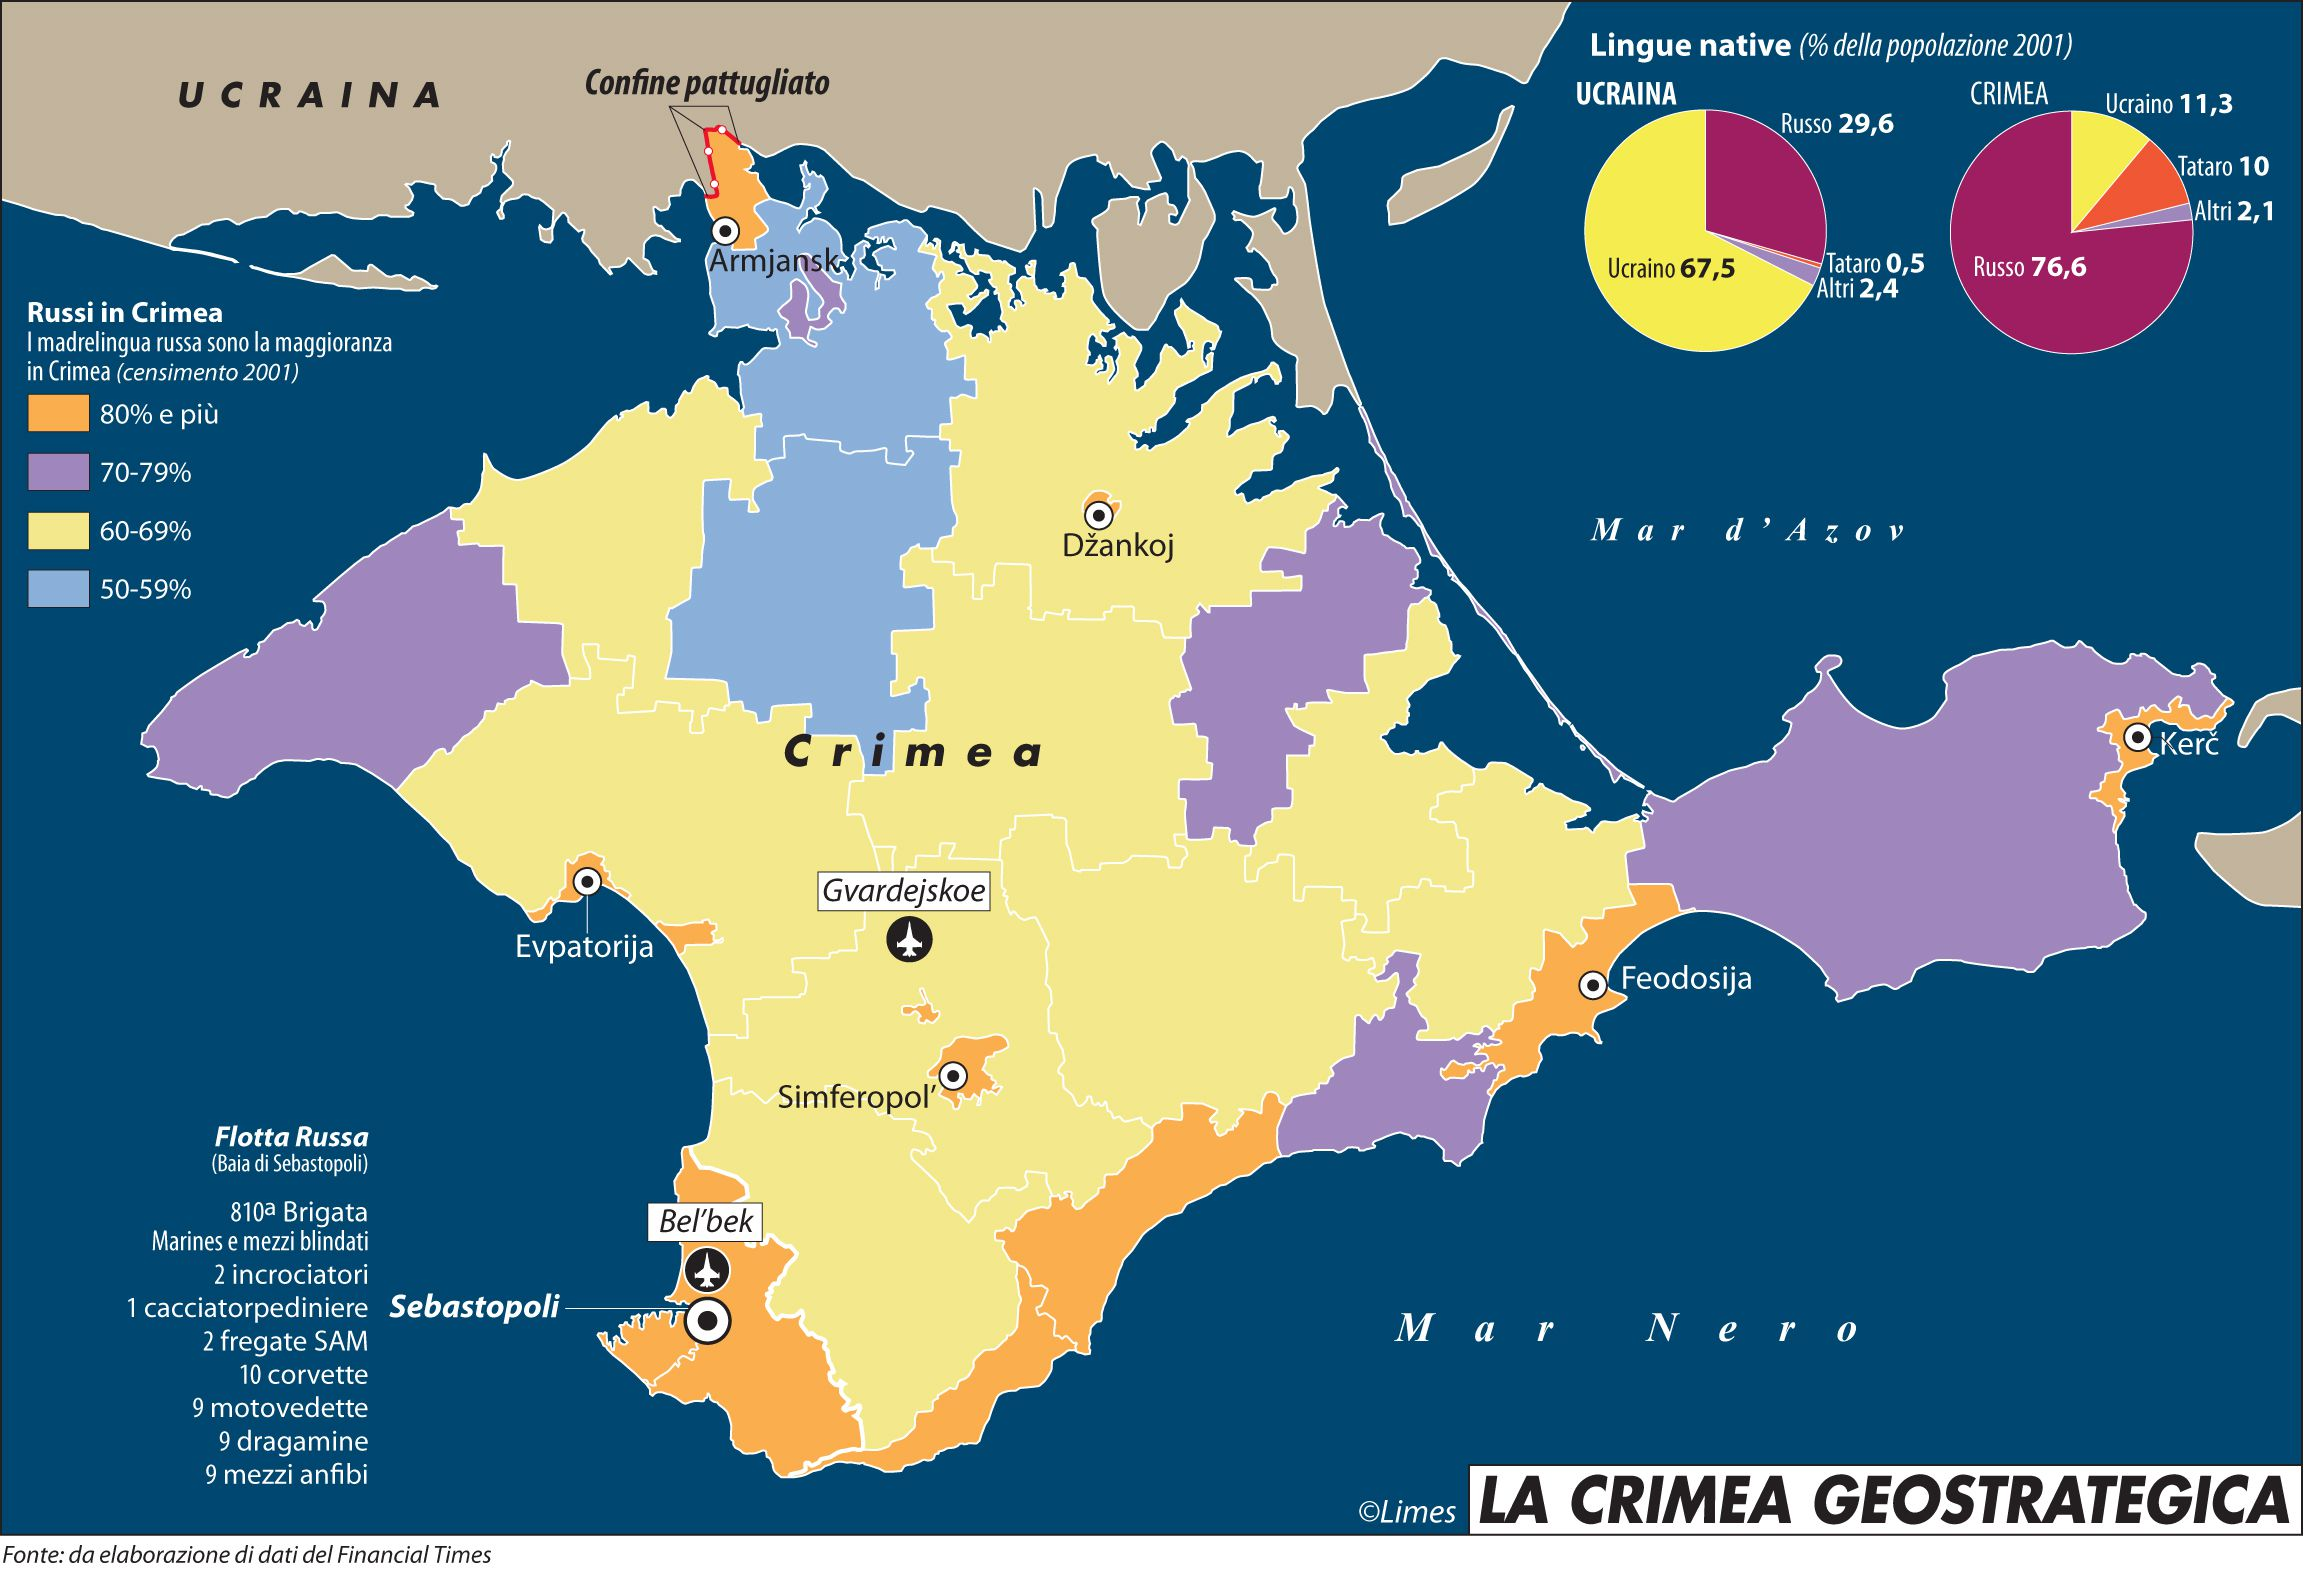 La Crimea geostrategica